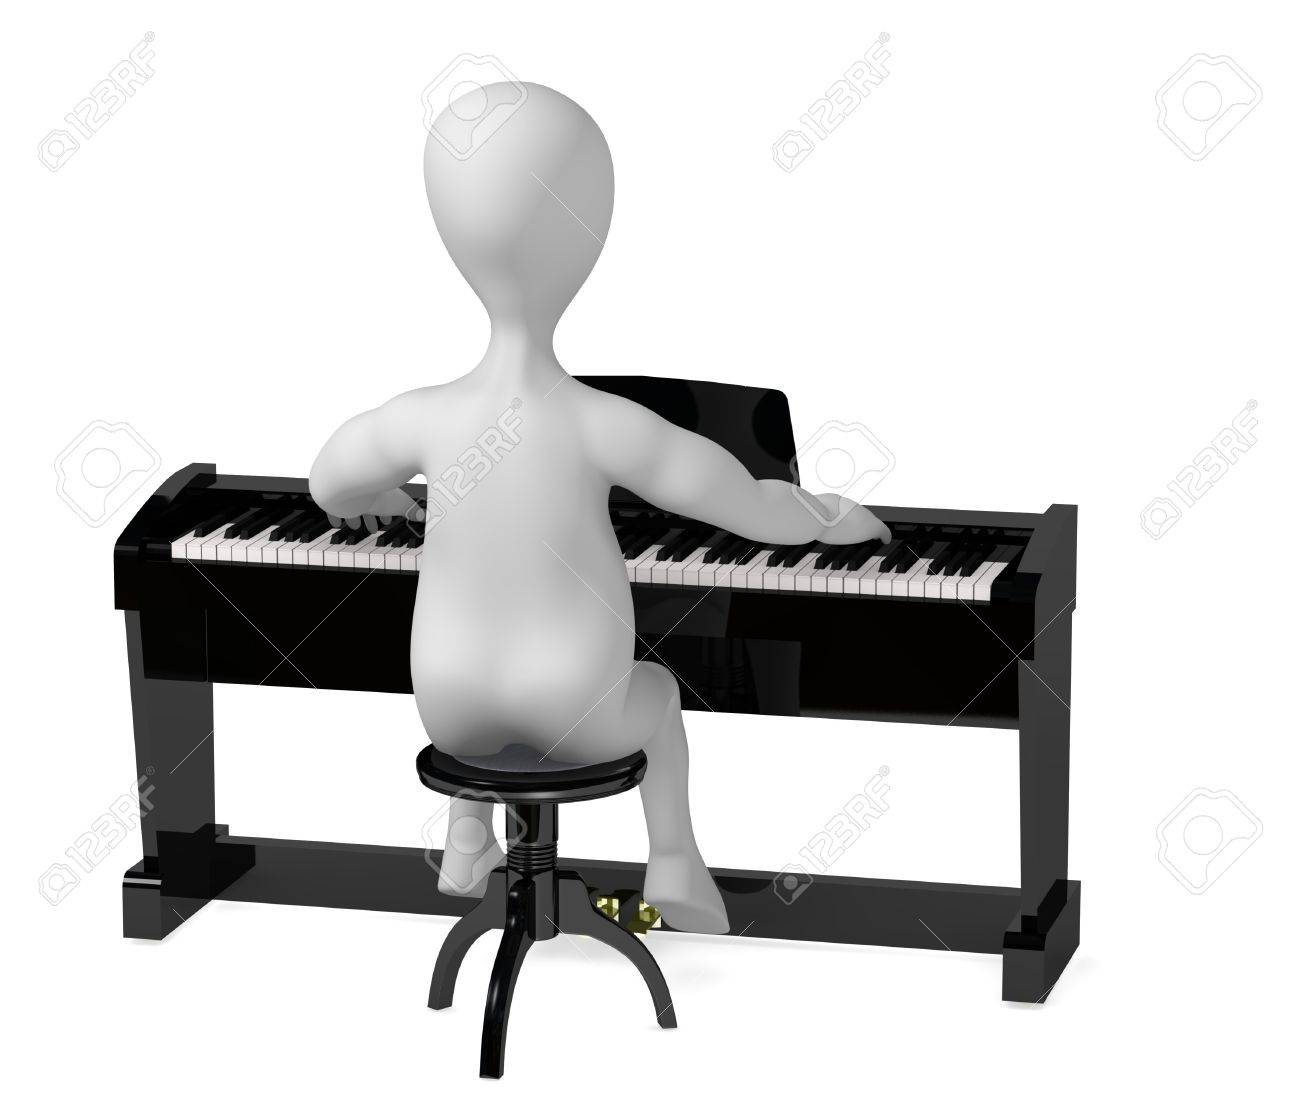 1300x1114 3d Render Of Cartoon Character Digital Piano Stock Photo, Picture